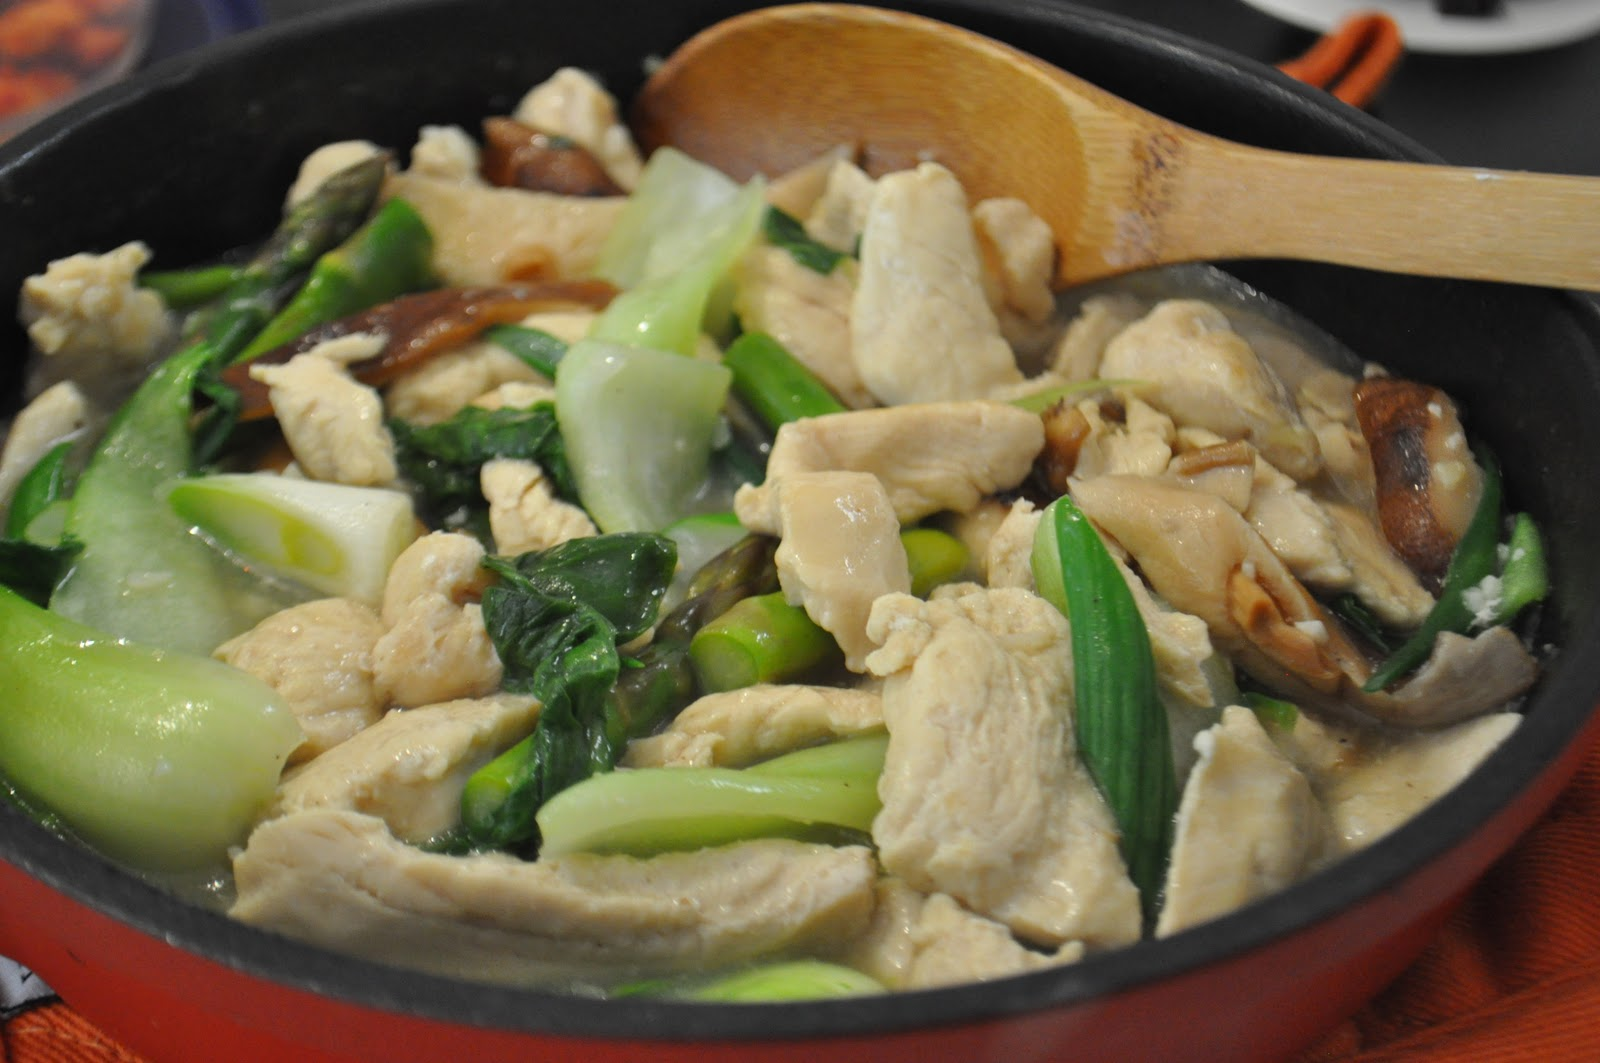 Moo goo gai pan is usually a simple stir-fried dish consisting of ...